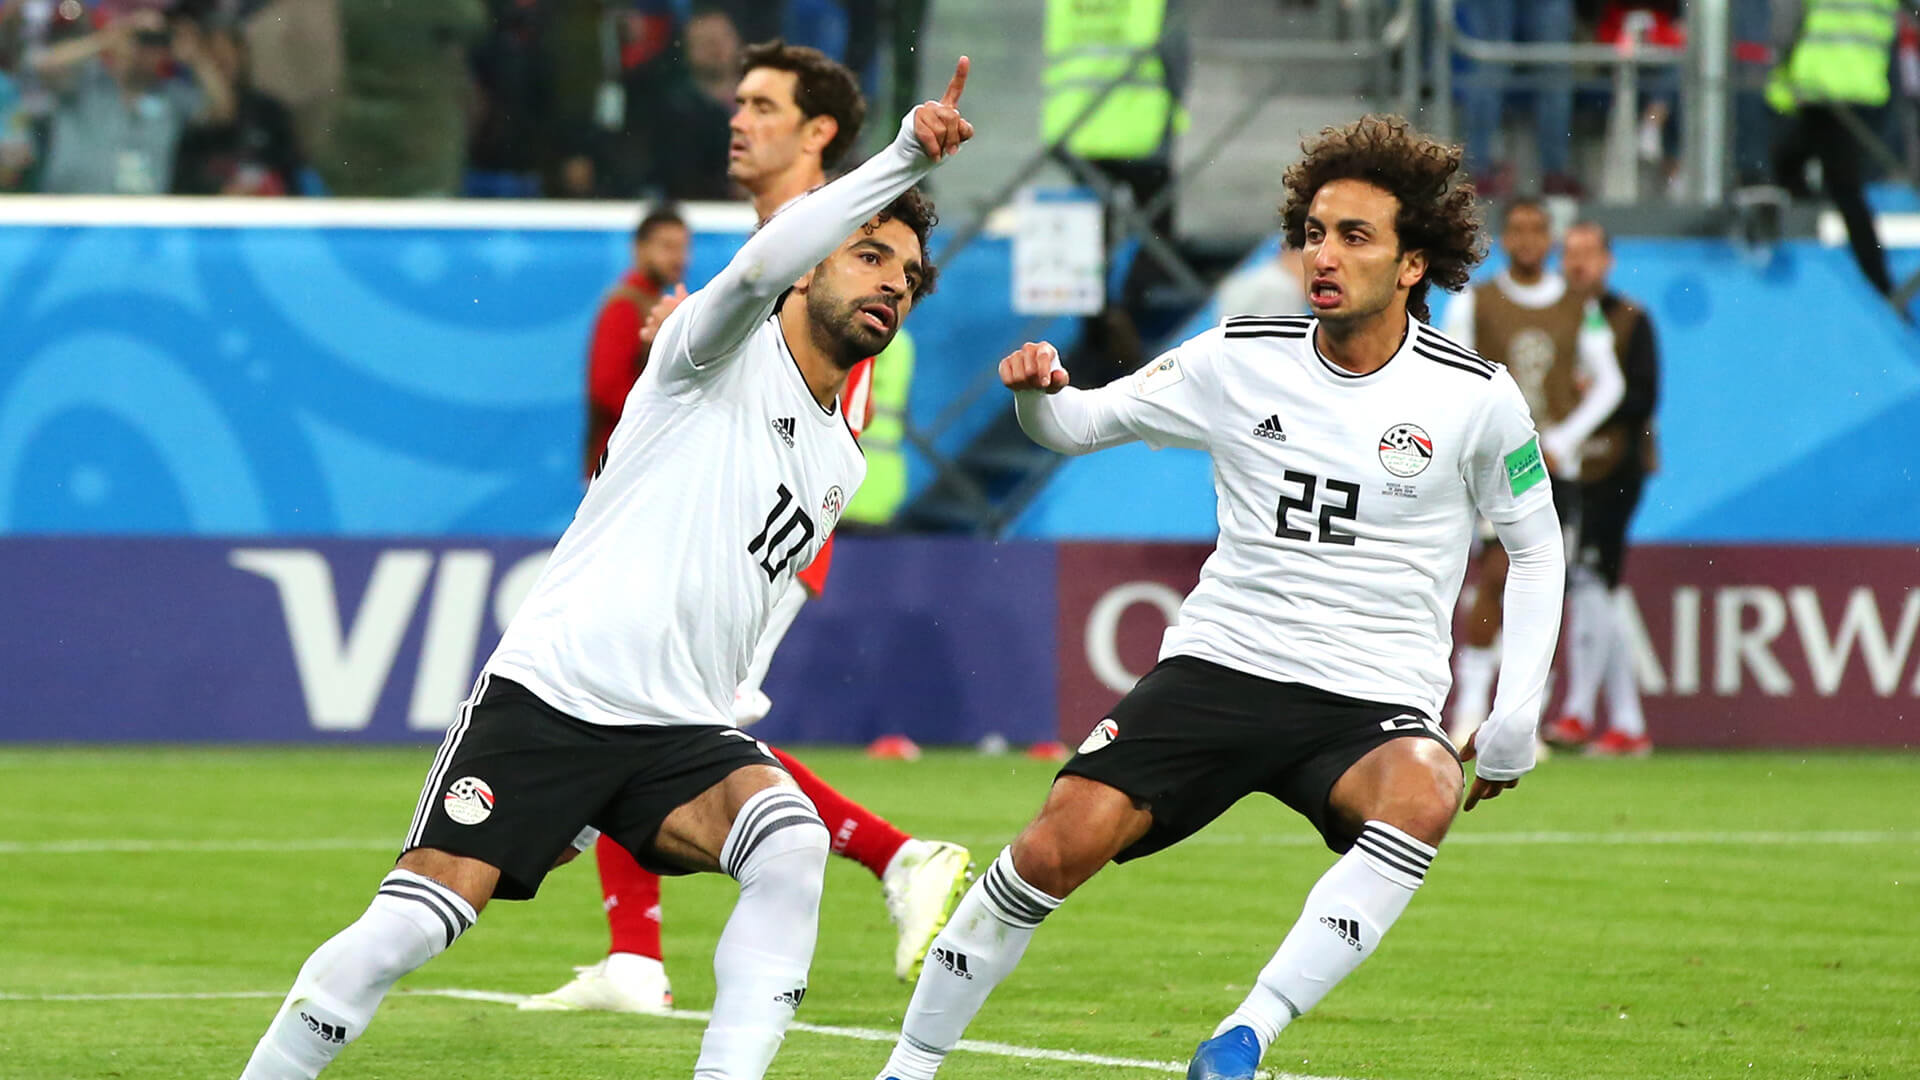 Egypt one step closer to elimination with loss to Russia as Mohamed Salah makes return from injury